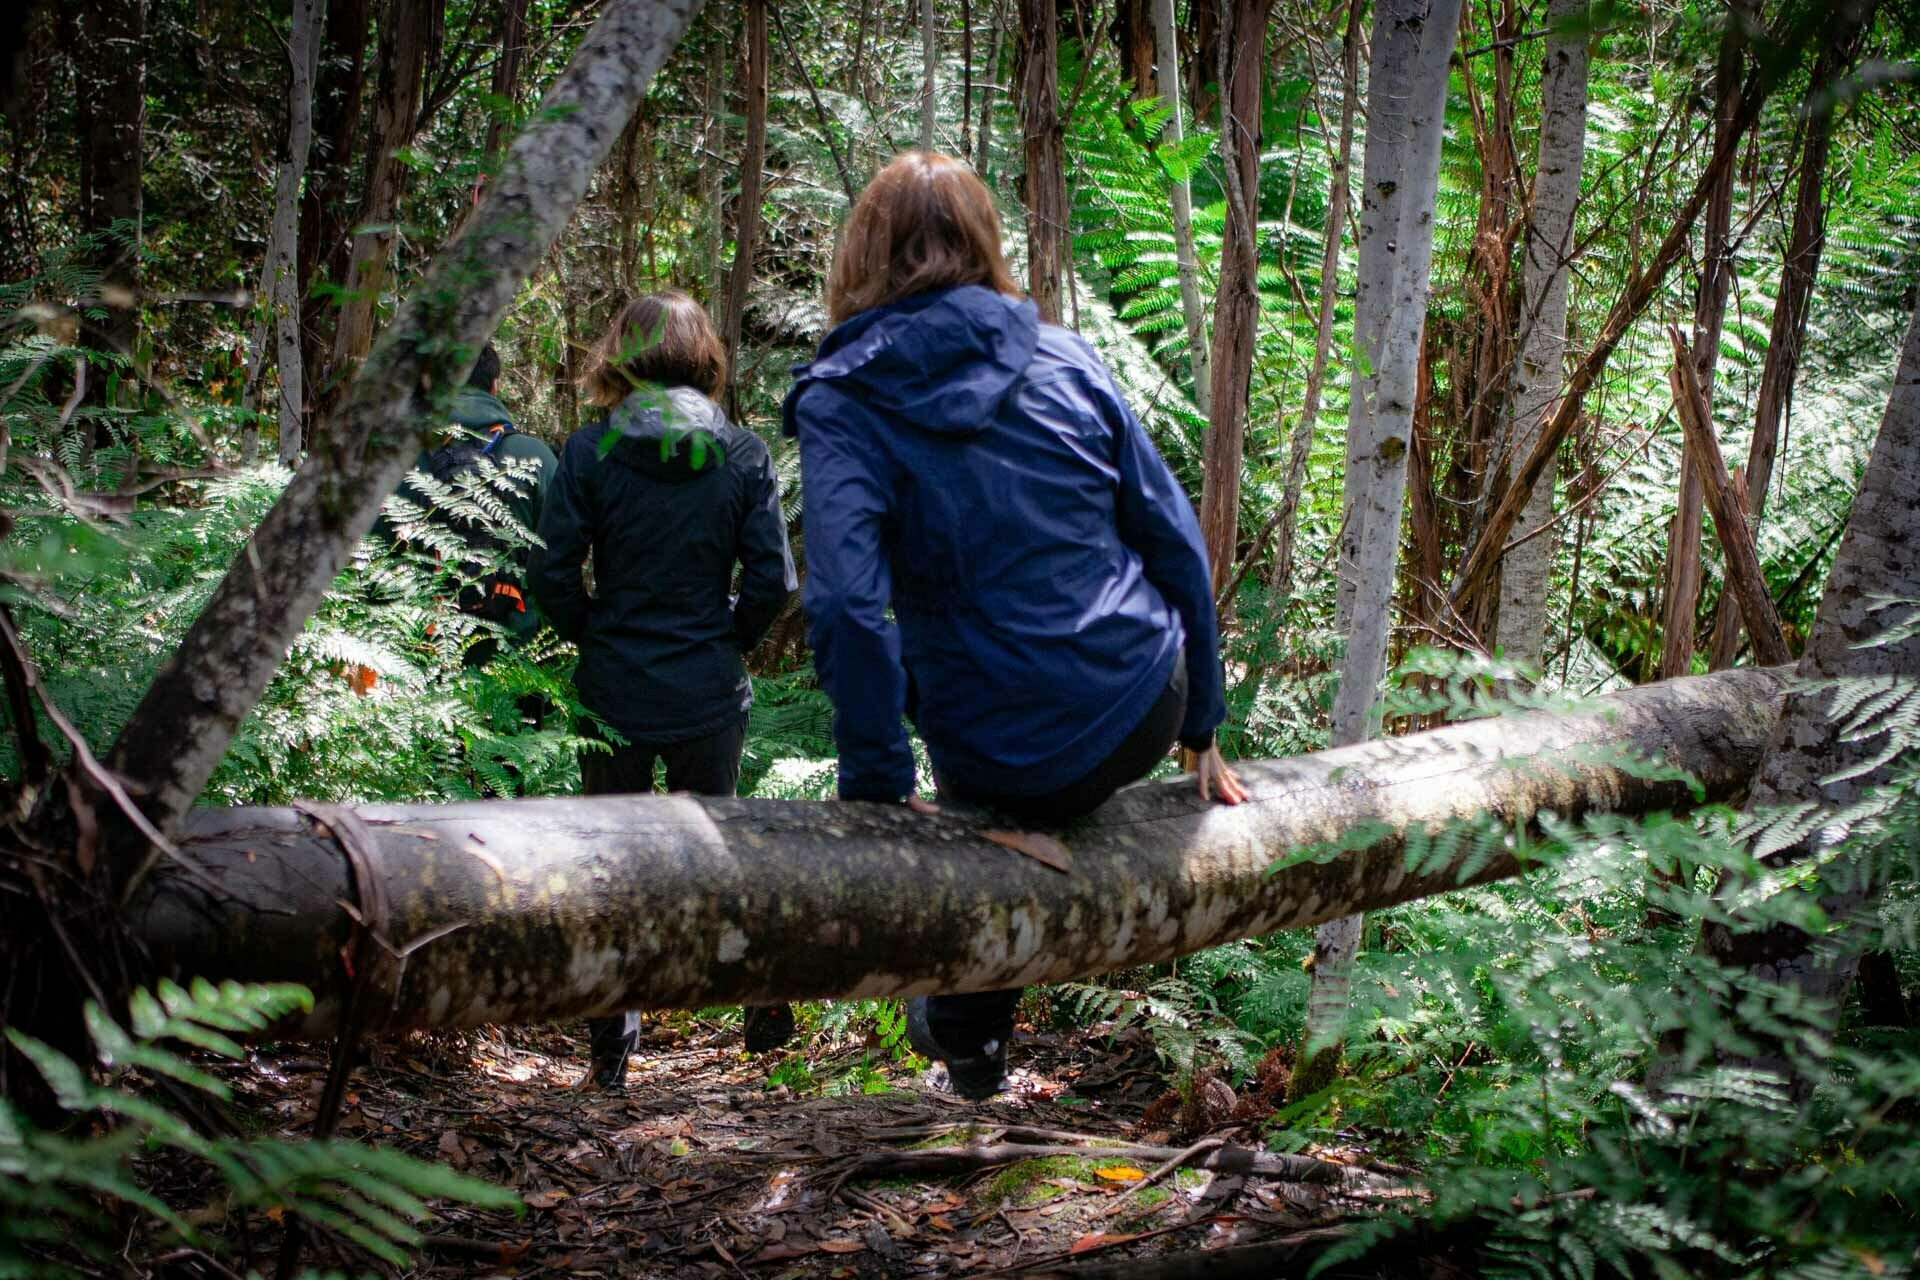 How To Walk Among Some of the World's Tallest Trees in Tassie, tolkien tall trees, styx river conservation park, tasmania